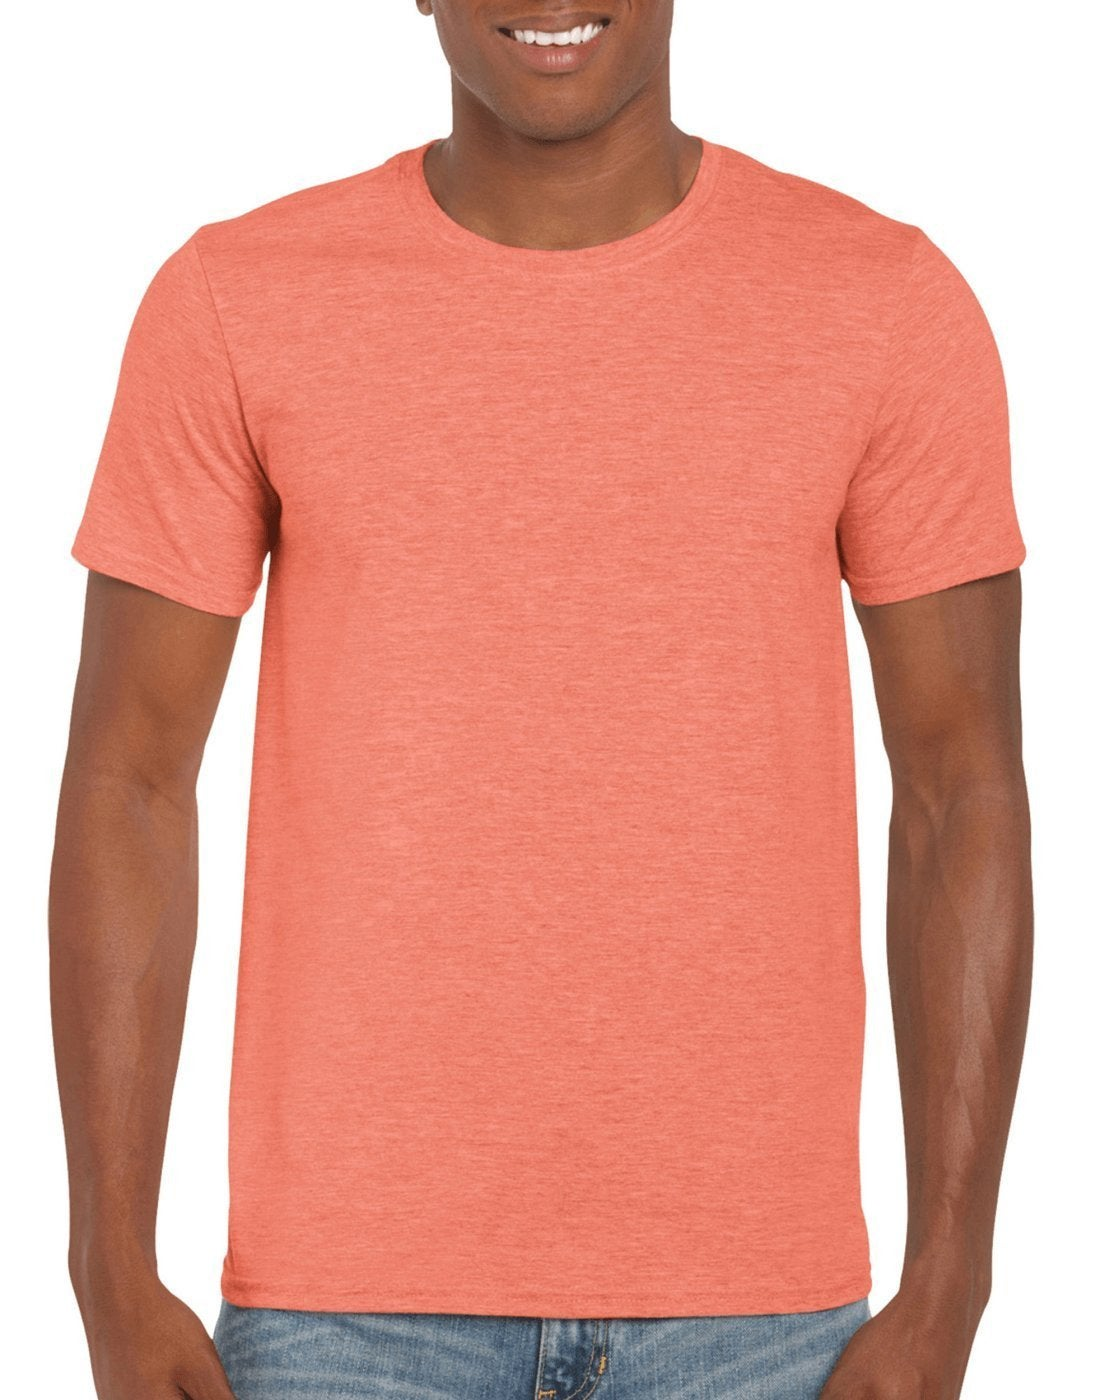 Men's Fitted Short Sleeve T-Shirt